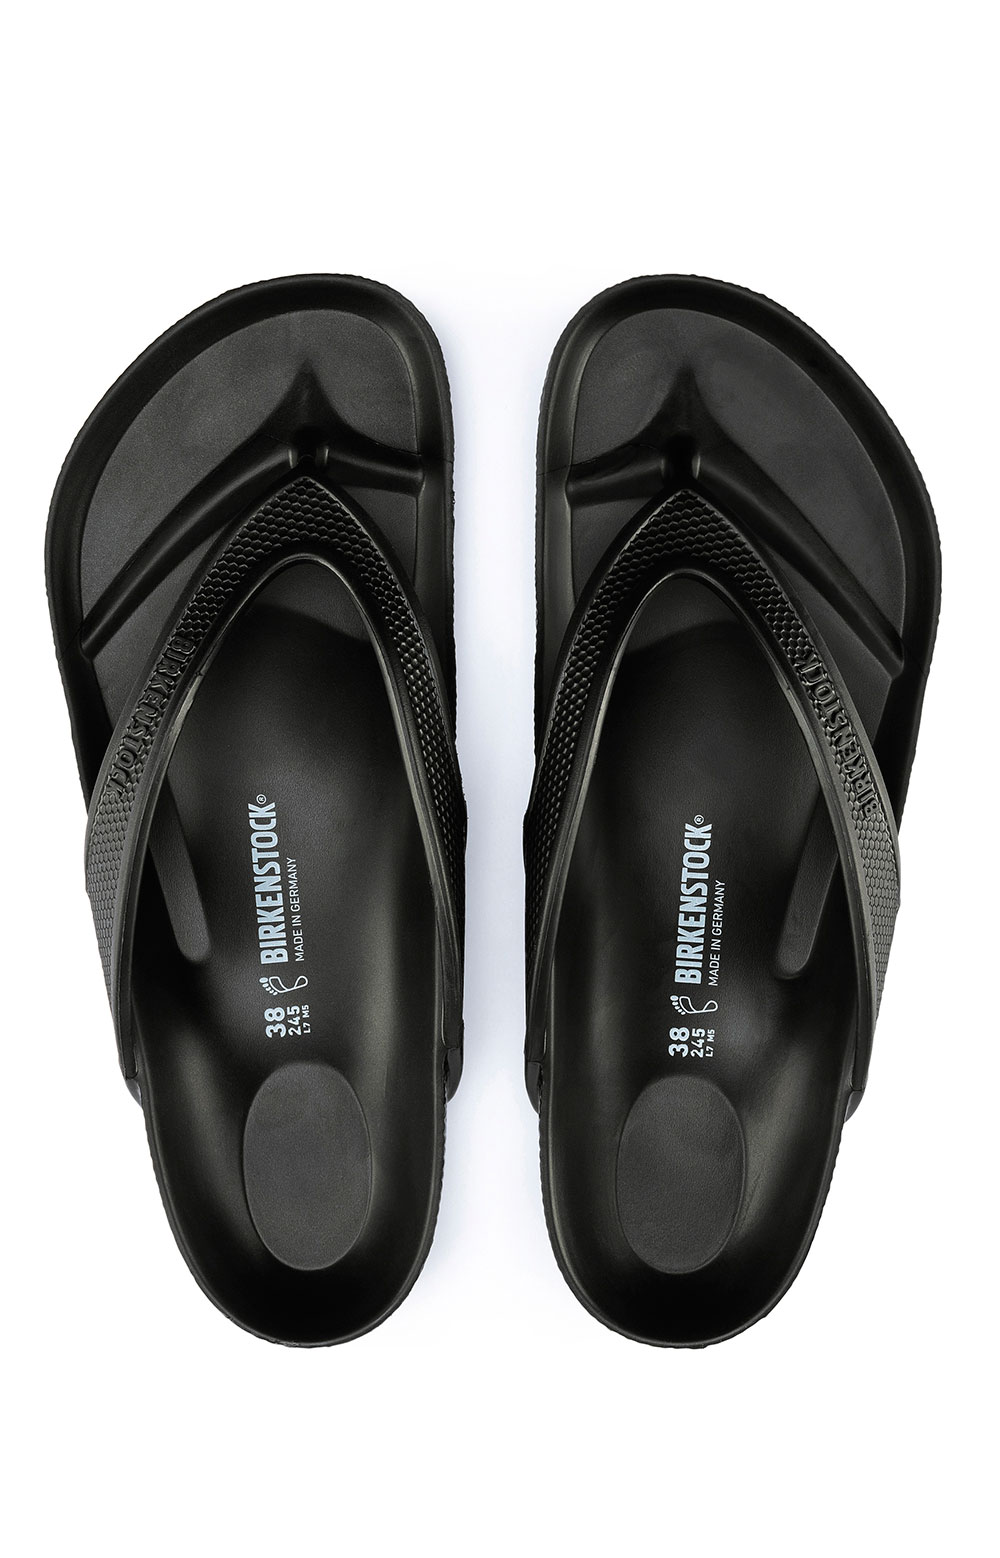 (1015487) Honolulu EVA Sandals - Black 5